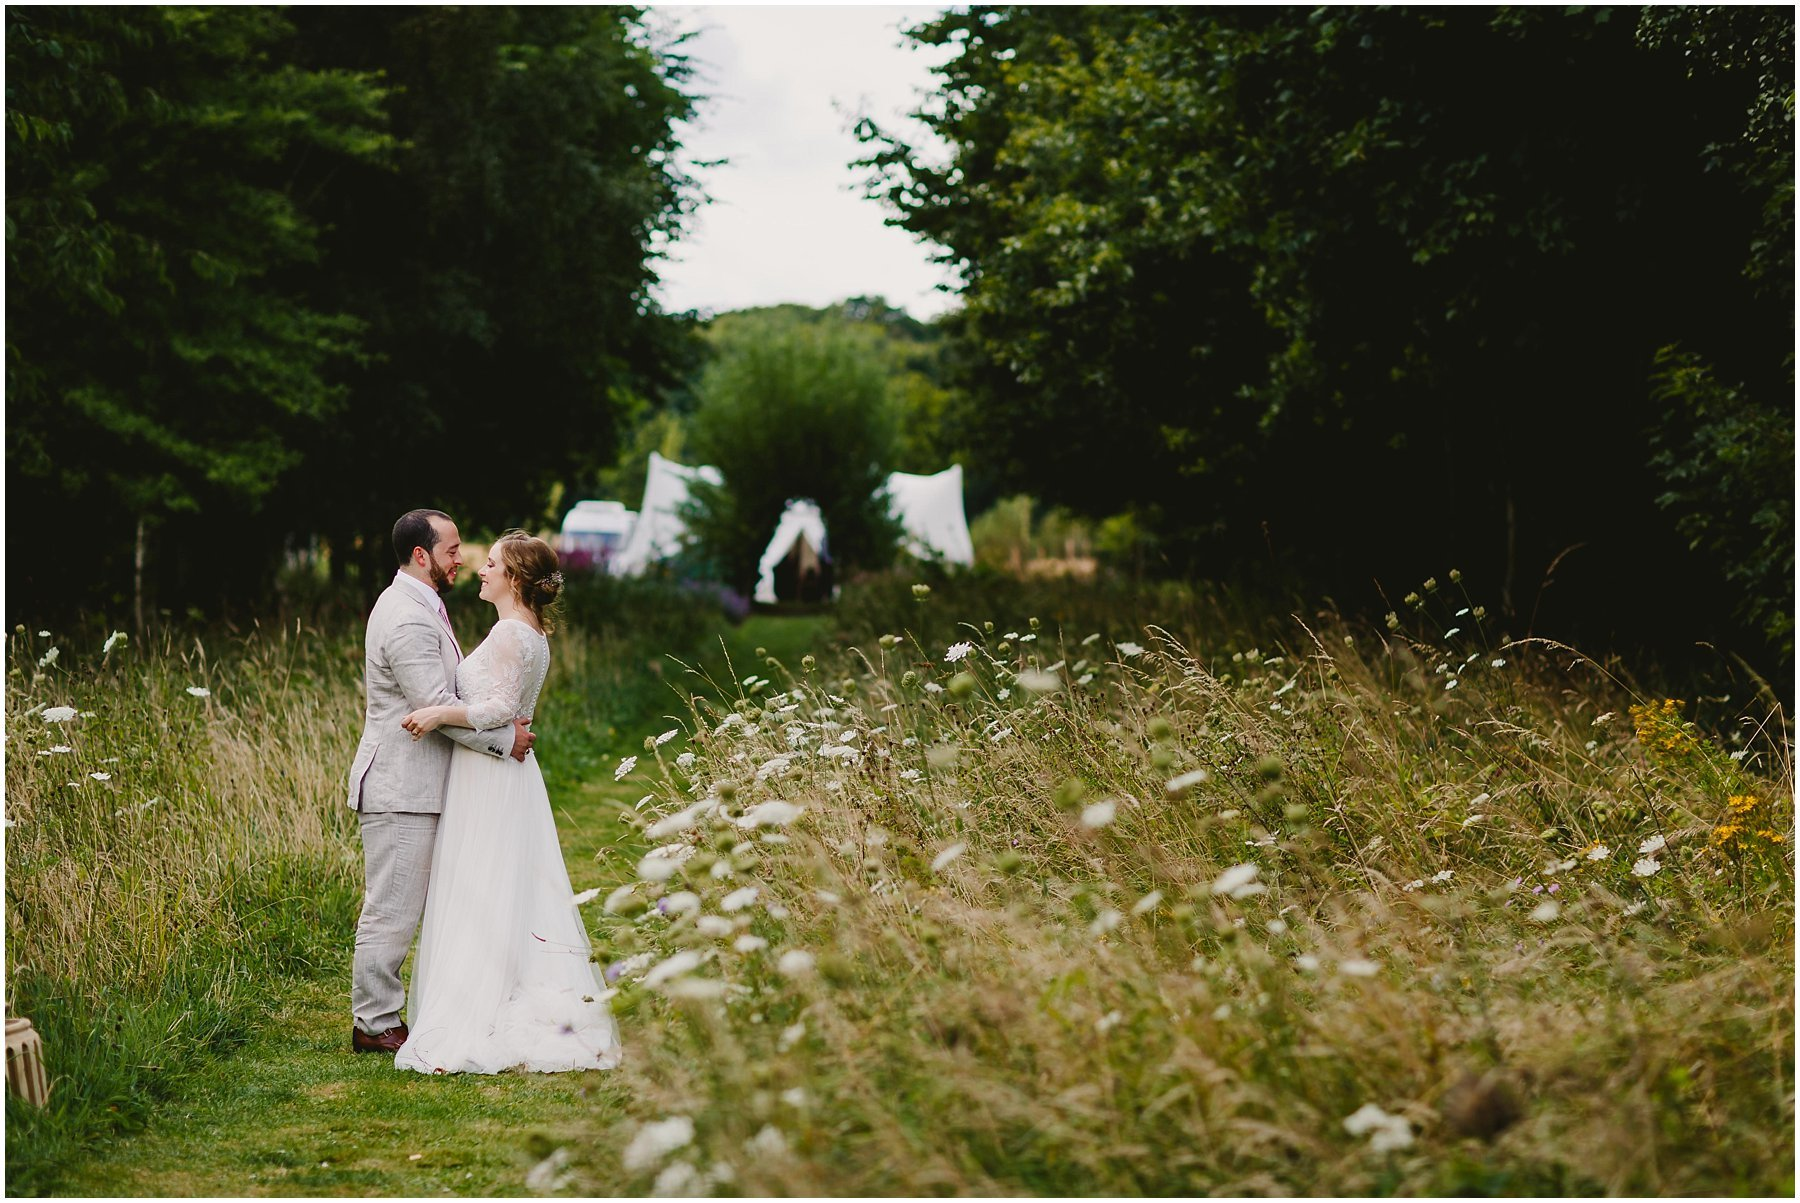 SOPHIE AND ALEX CHAUCER BARN WEDDING - NORFOLK WEDDING PHOTOGRAPHER